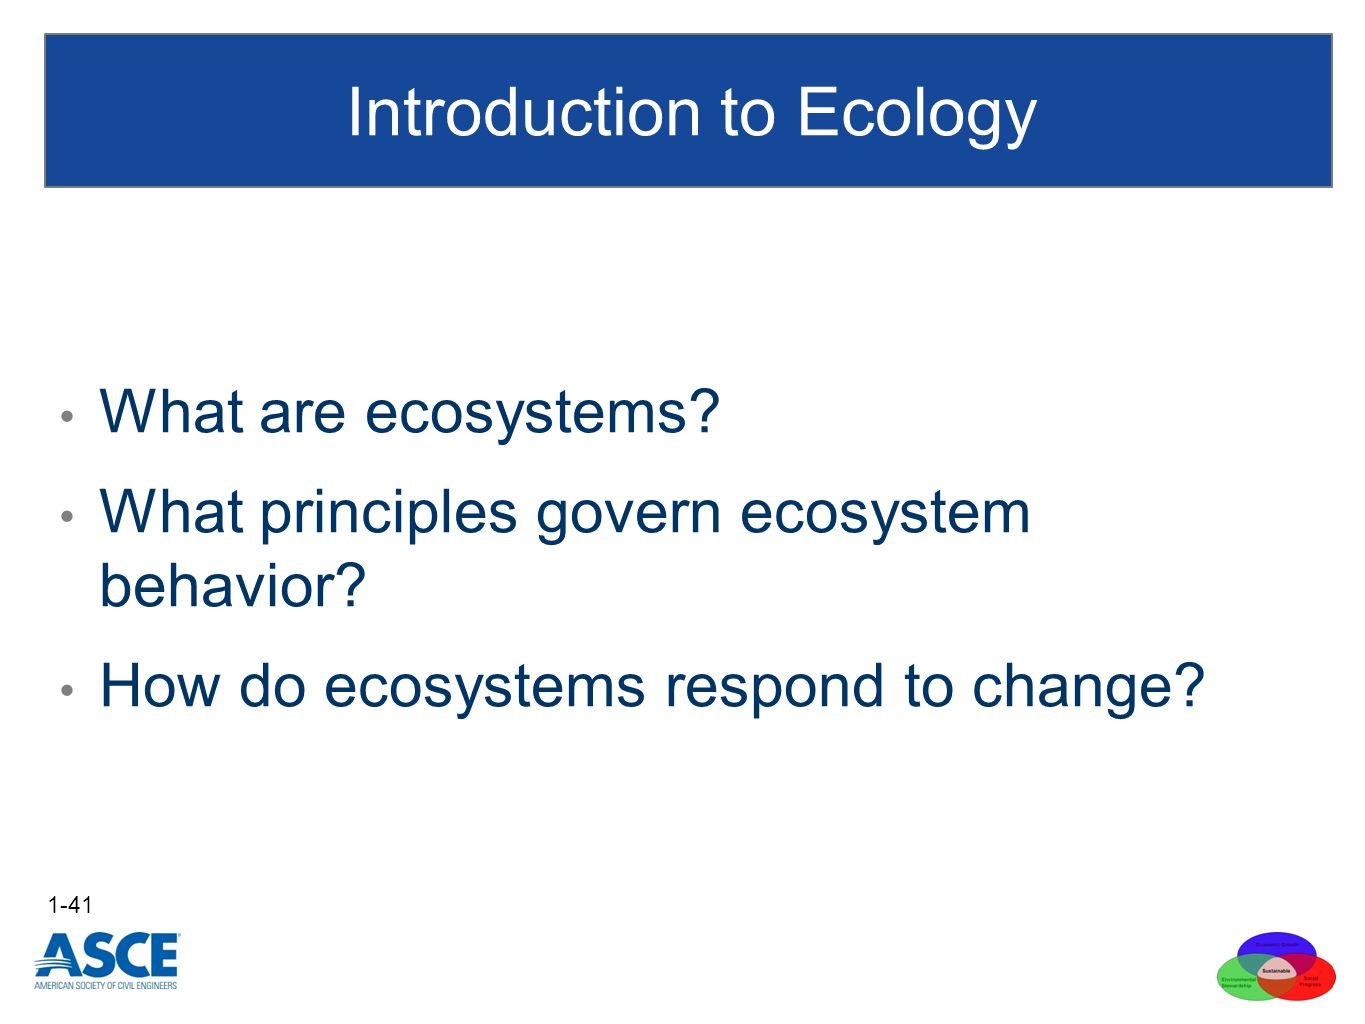 What are ecosystems. What principles govern ecosystem behavior.